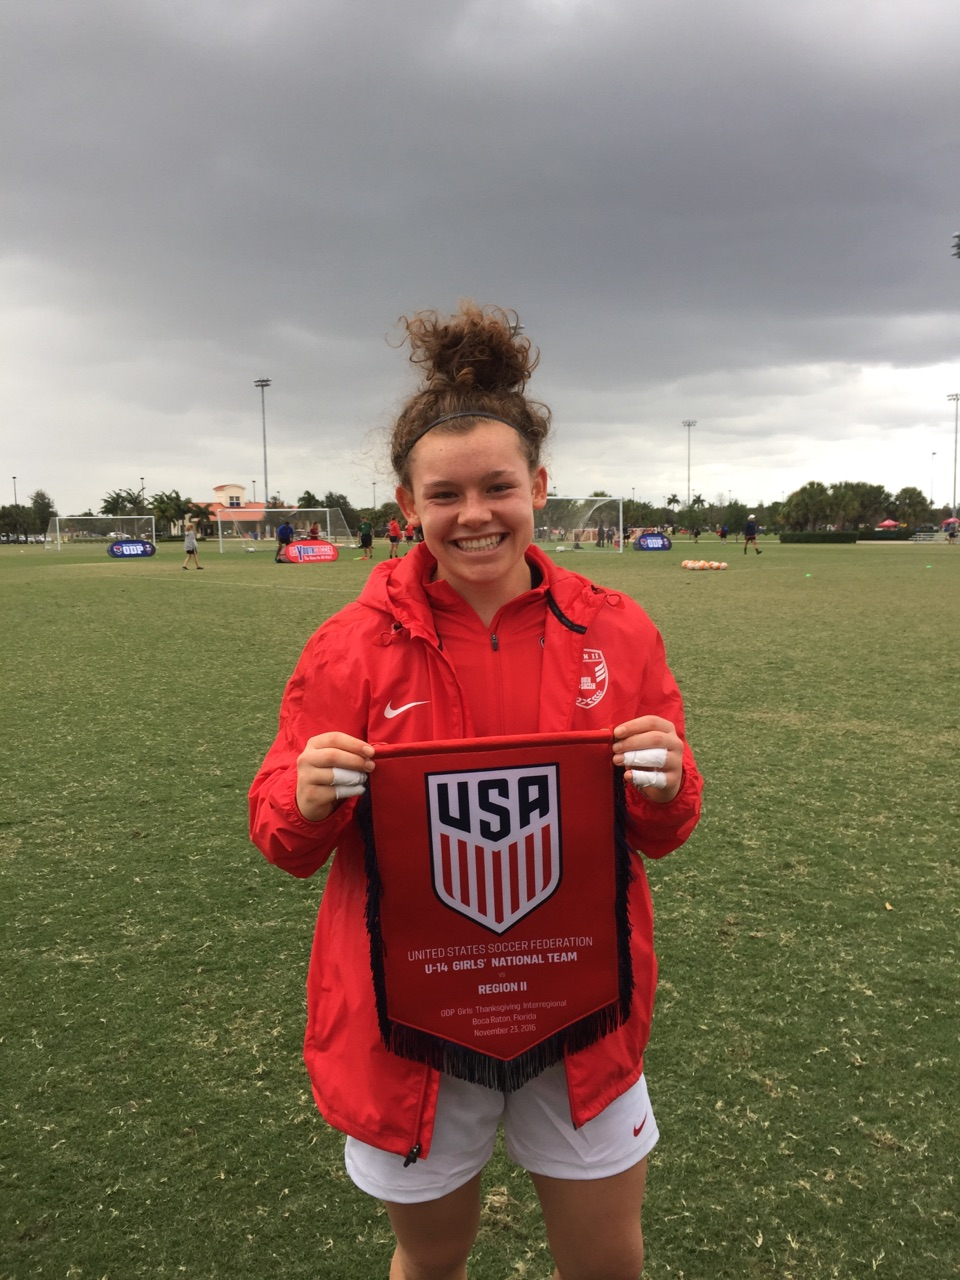 Congratulations to Maggie on her recent success in Florida!